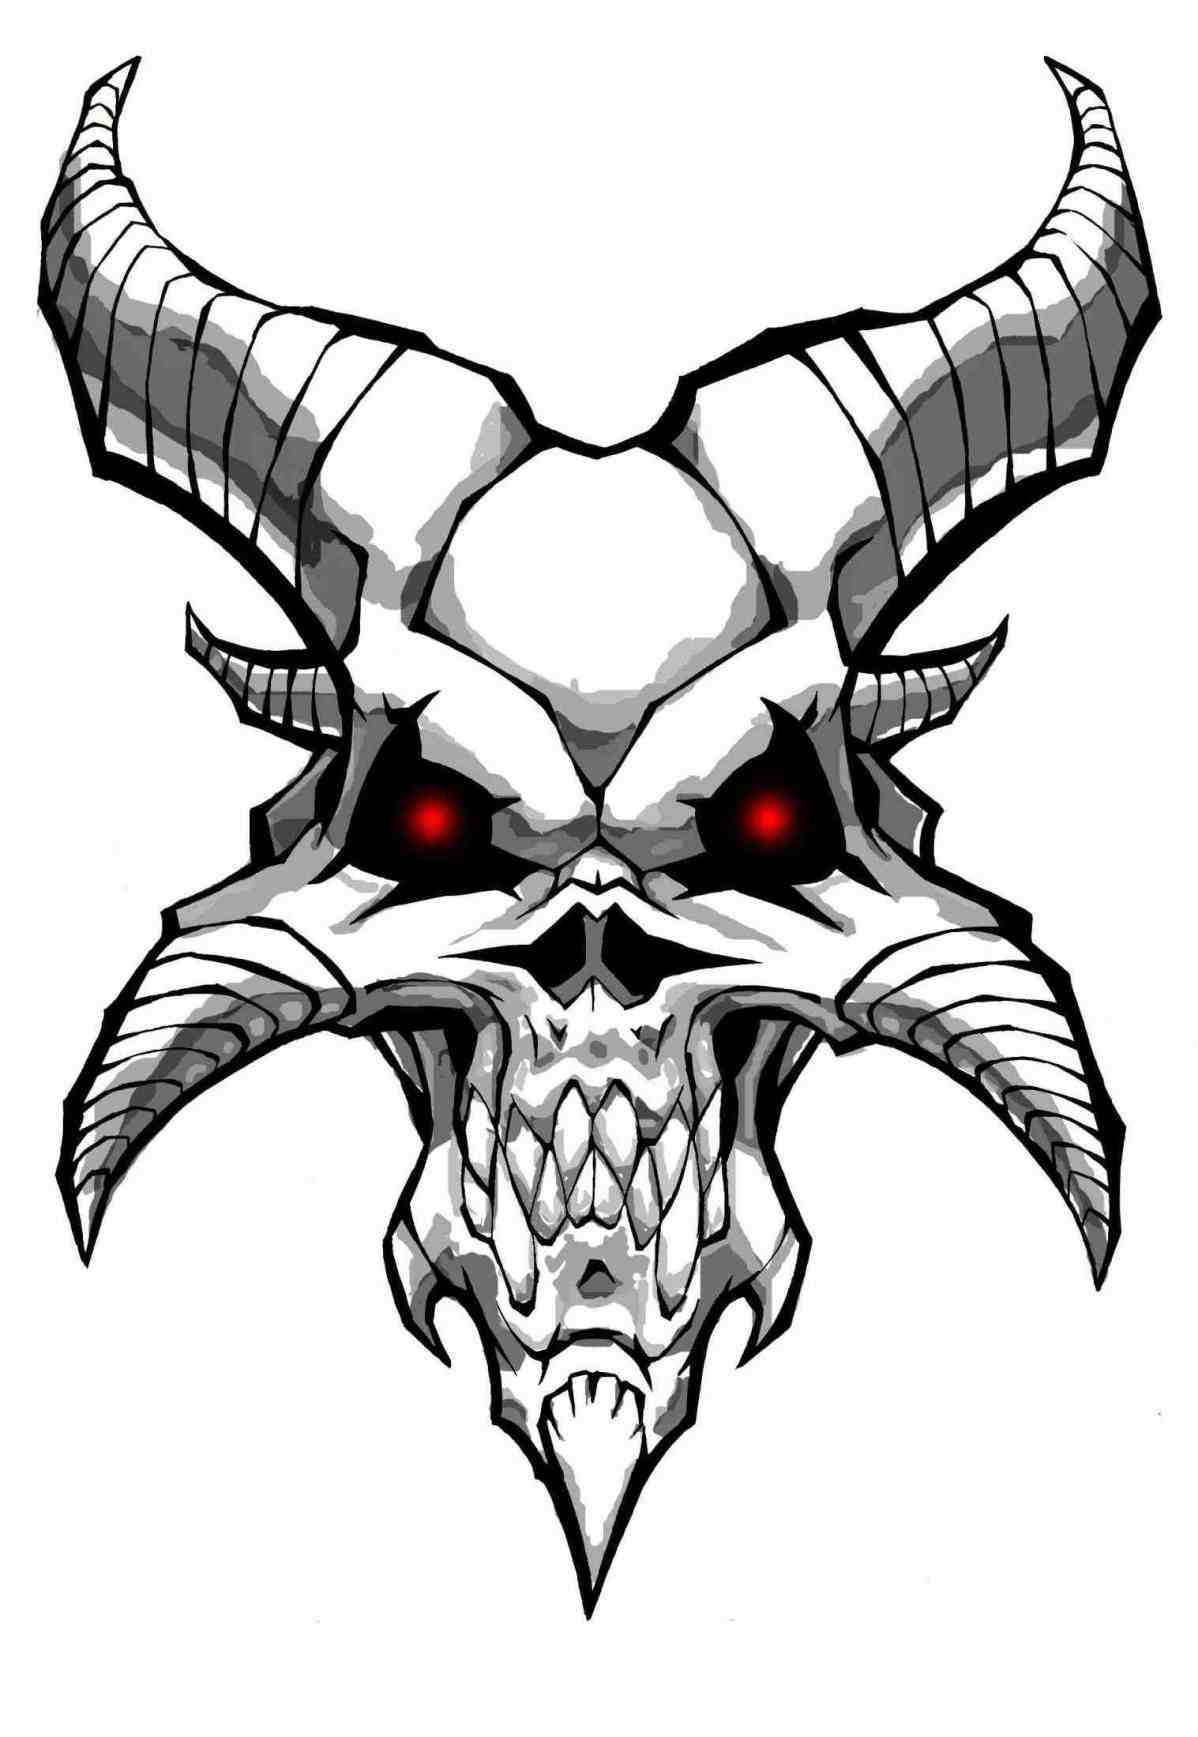 1198x1737 Skull Drawings With Horns